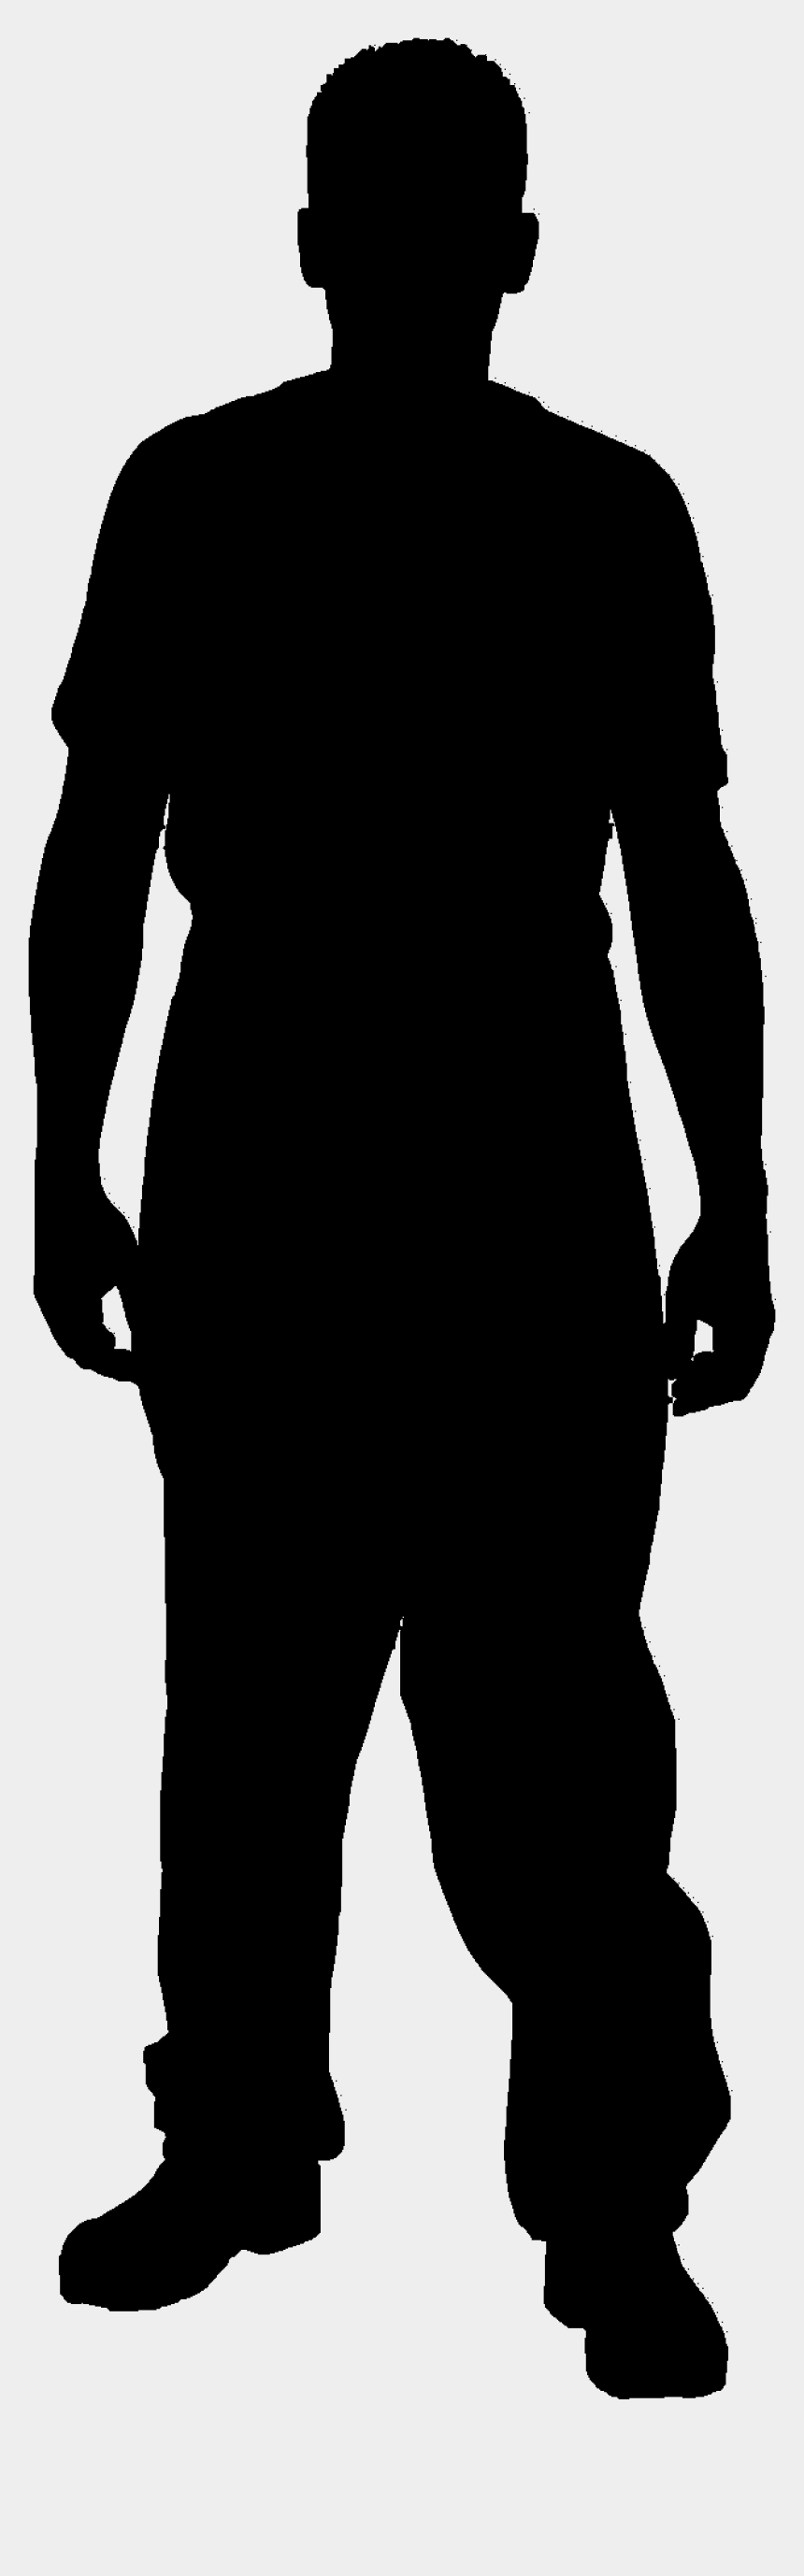 free vector clipart images download, Cartoons - Silhouette Standing Man Waiting